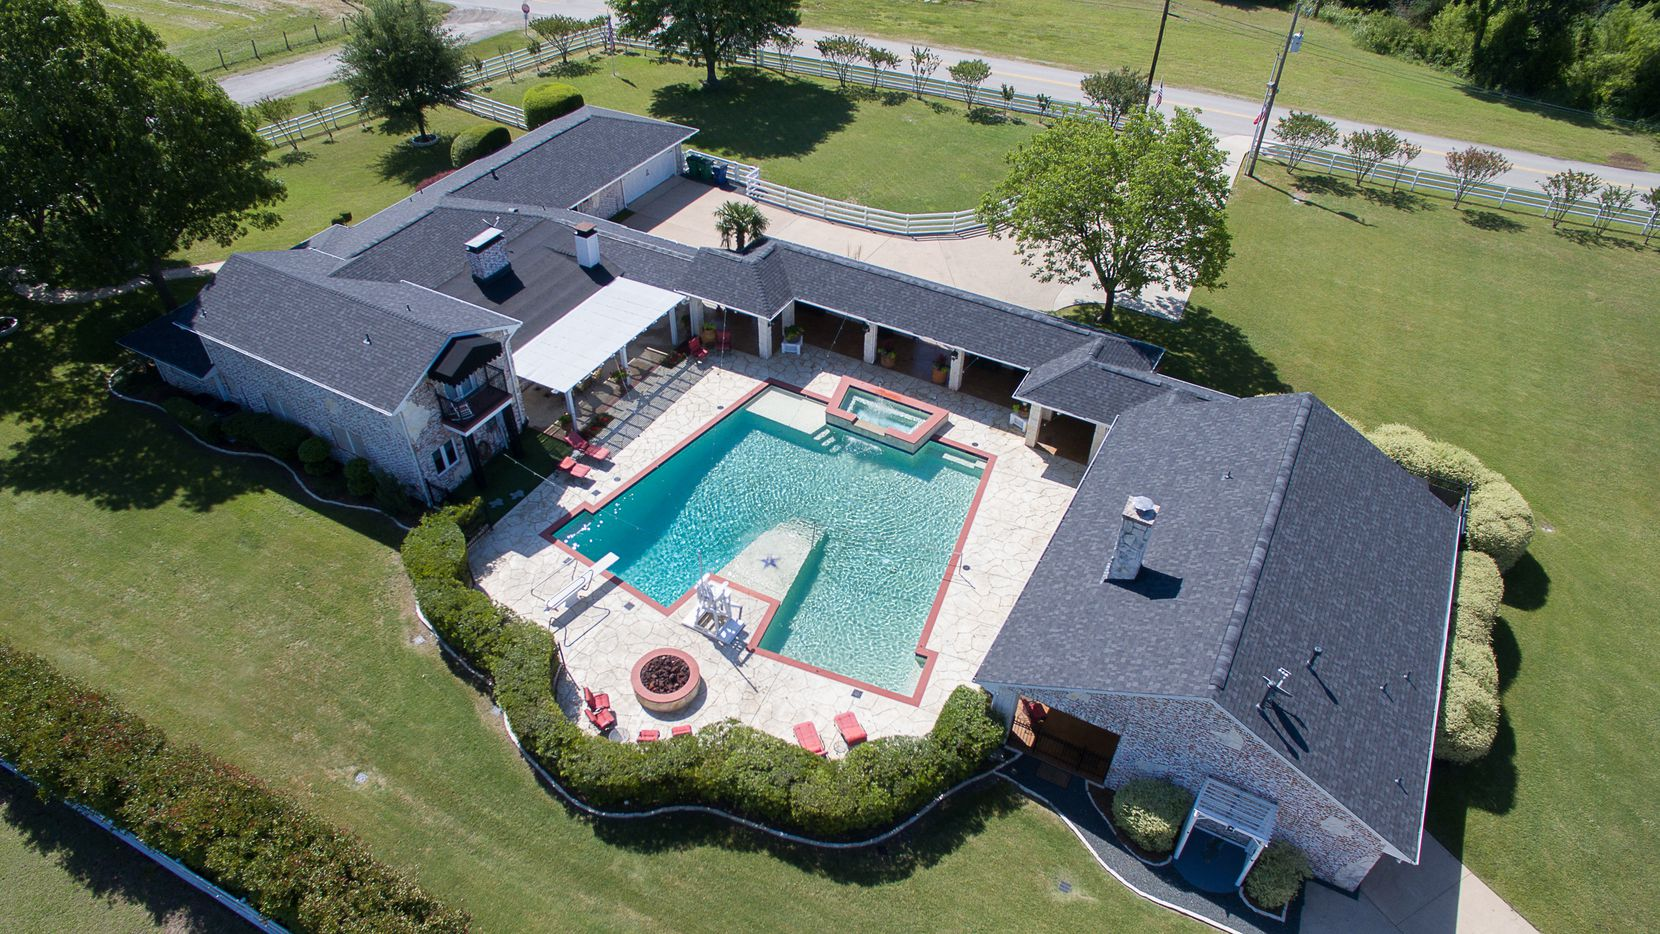 5 Star Ford Carrollton >> Fast N' Loud's Dennis Collins selling dream house in Murphy and its killer 20-car garage